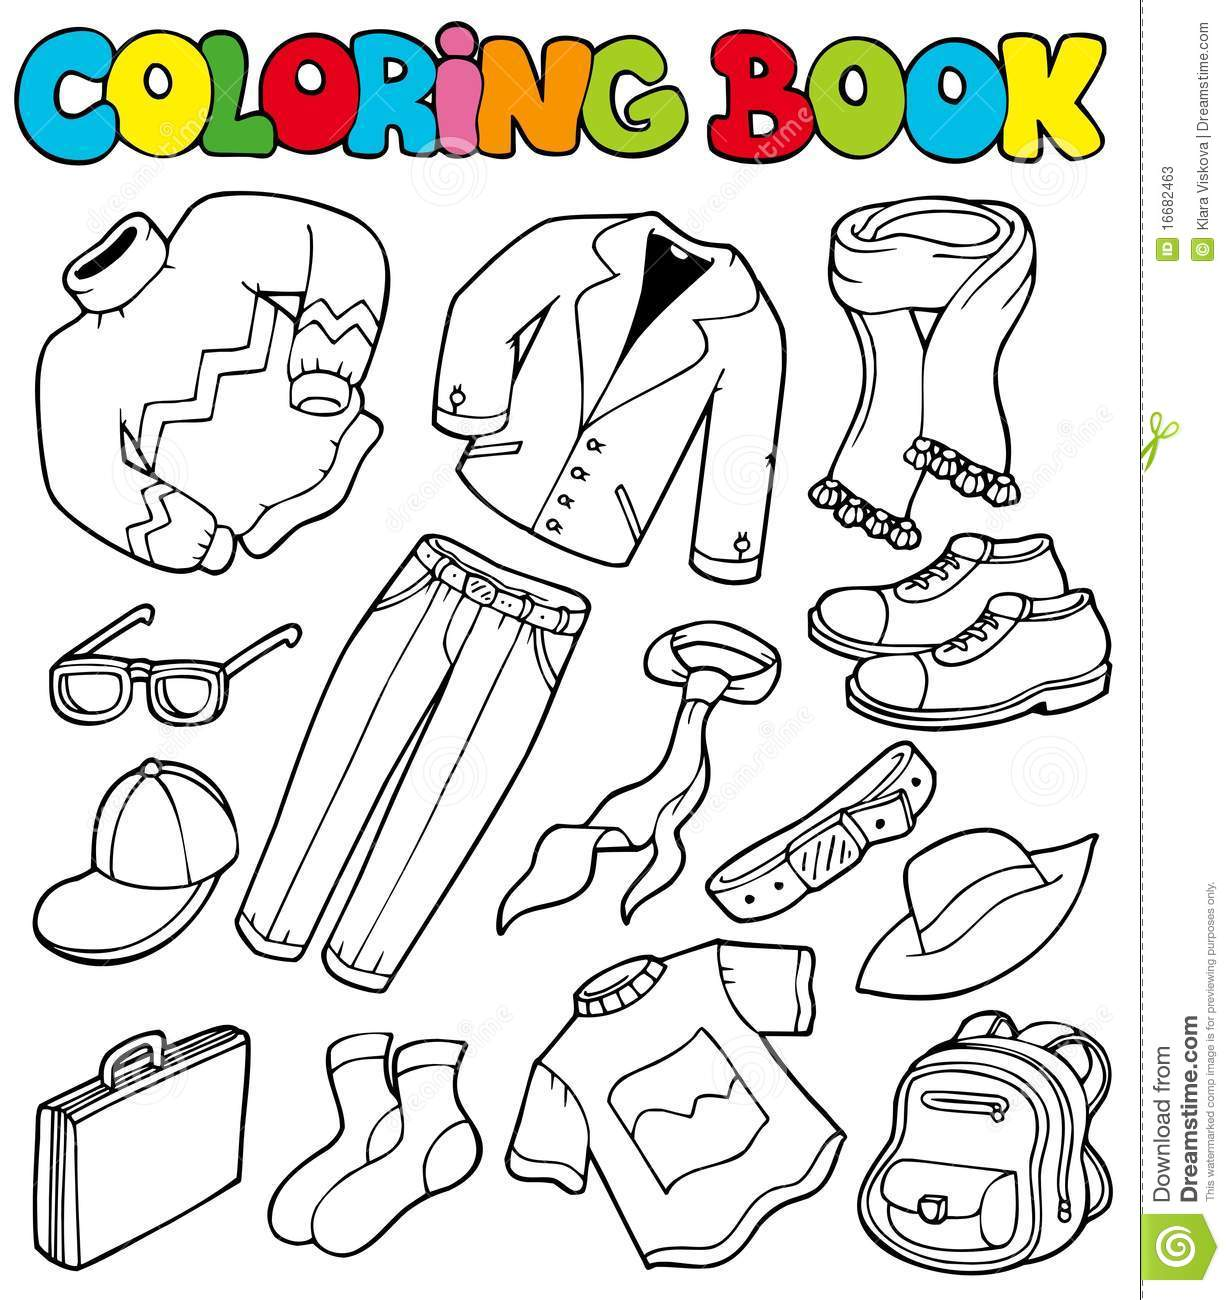 Summer clothes coloring pages - Coloring Book With Apparel 1